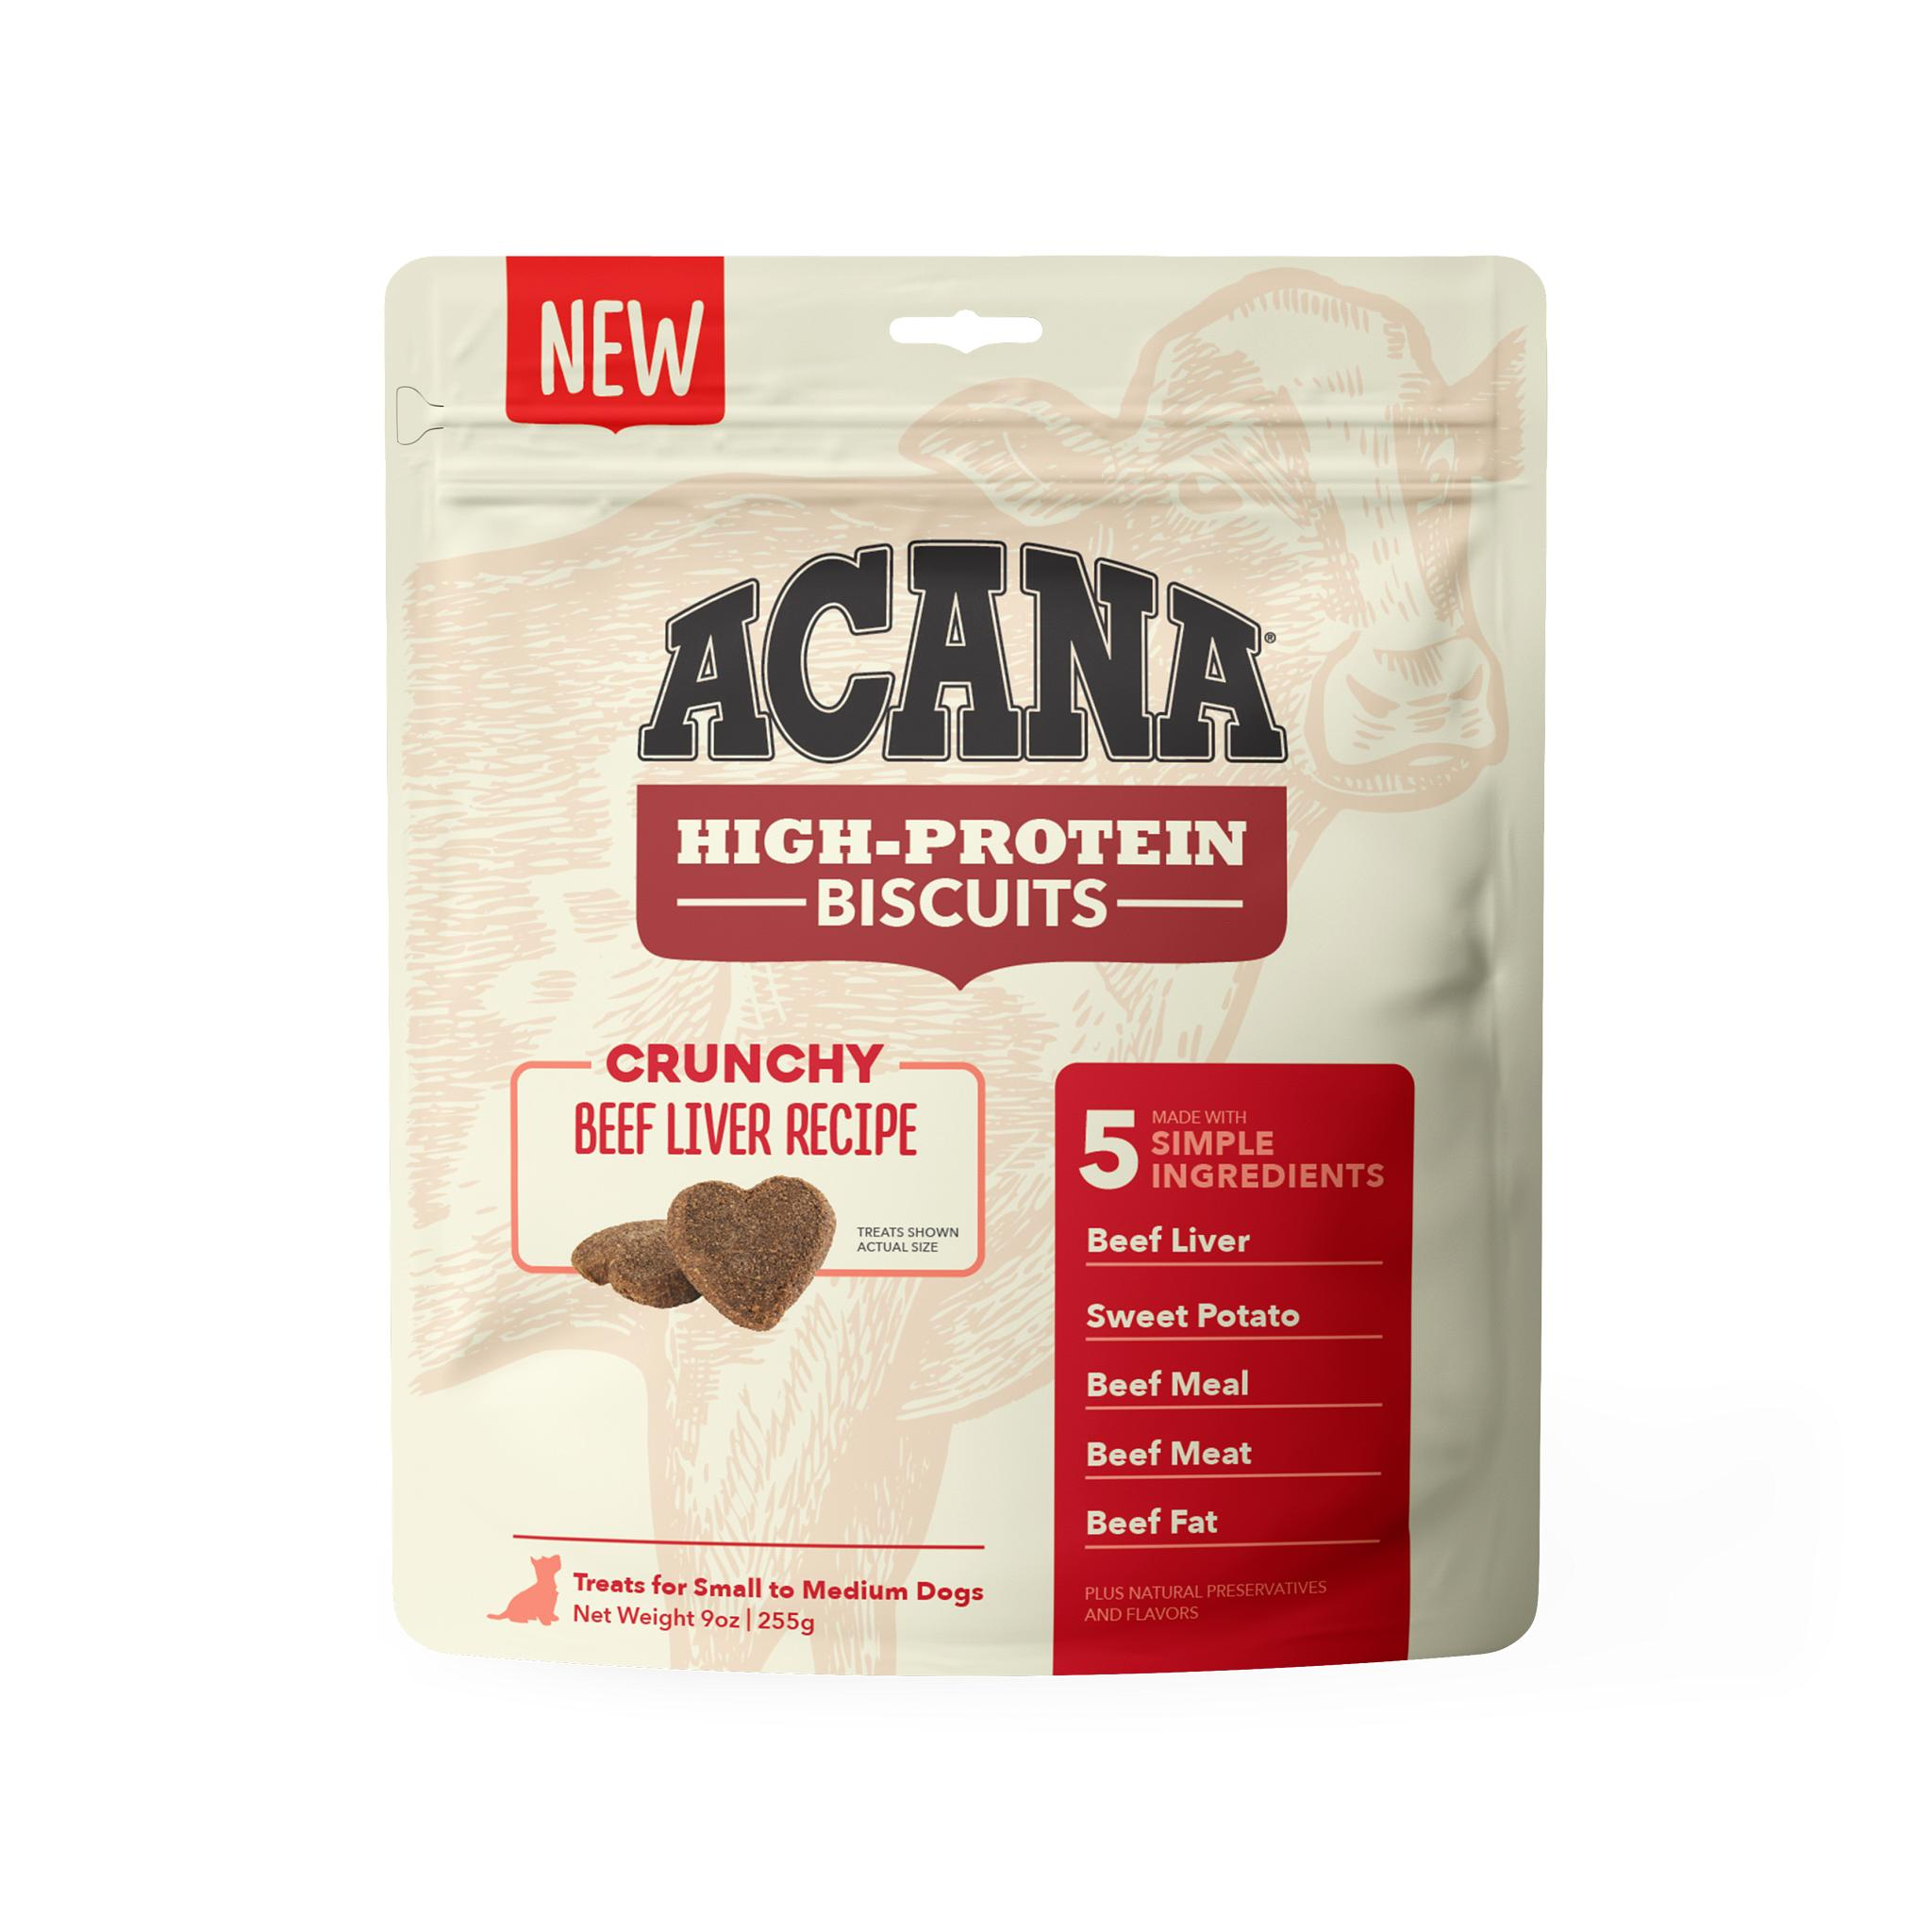 ACANA Crunchy Biscuits Beef Liver Recipe Dog Treats, Small